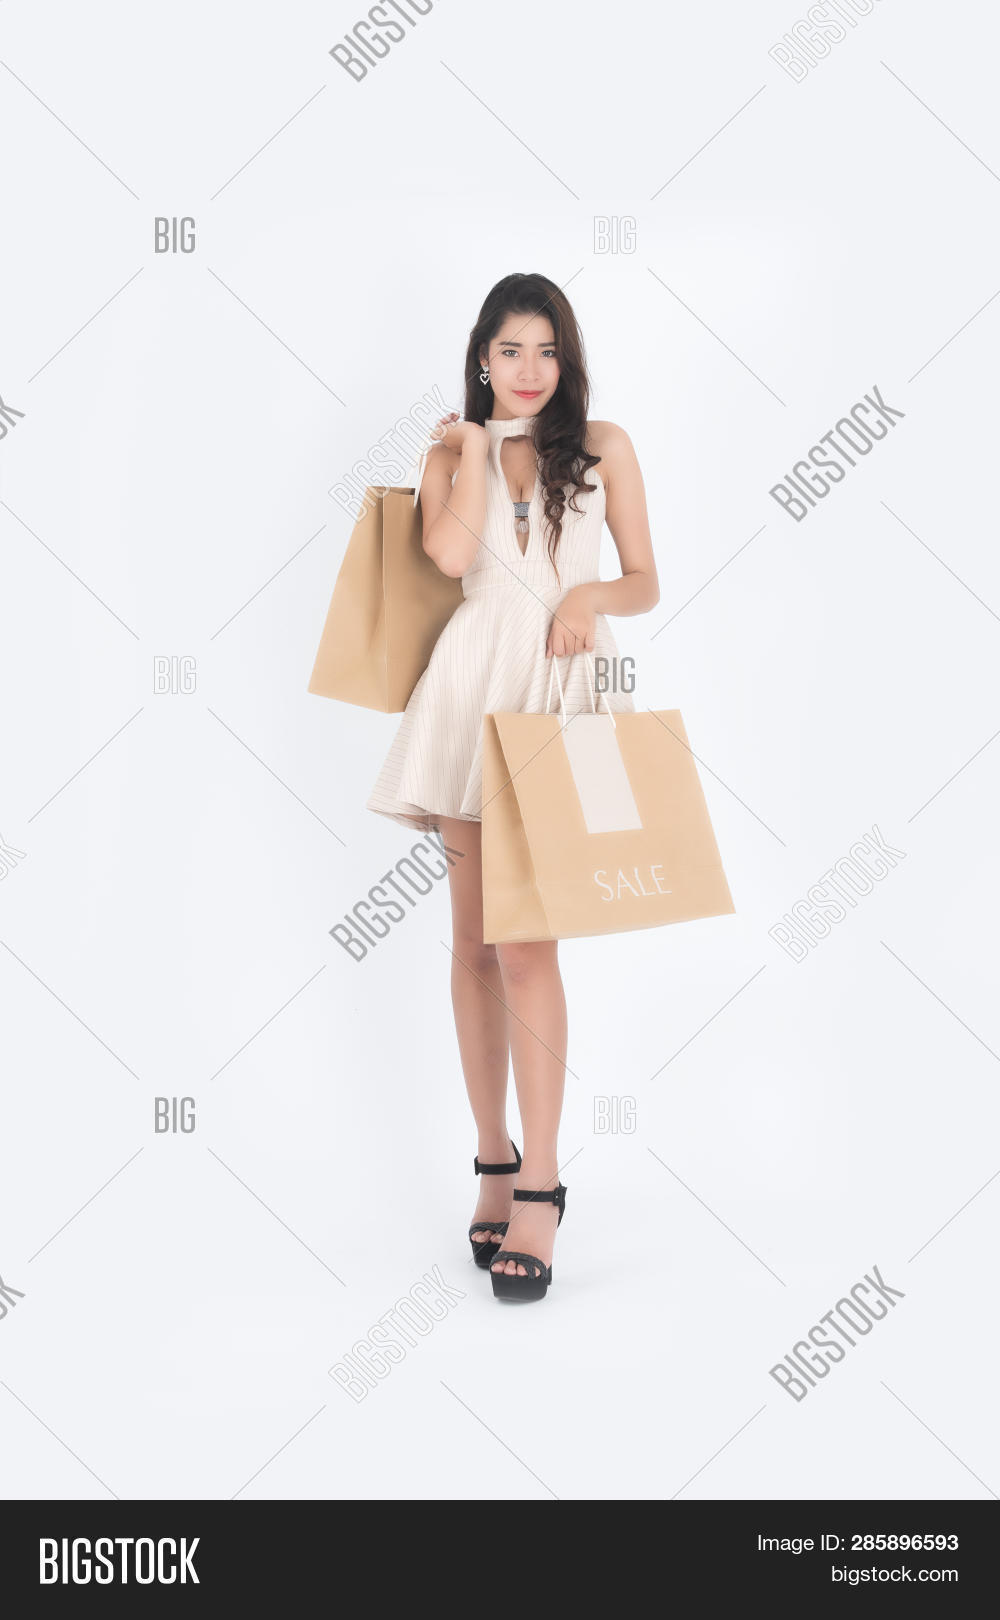 Woman hold shopping bag, Asian girl, 20-30 years old,on white background.